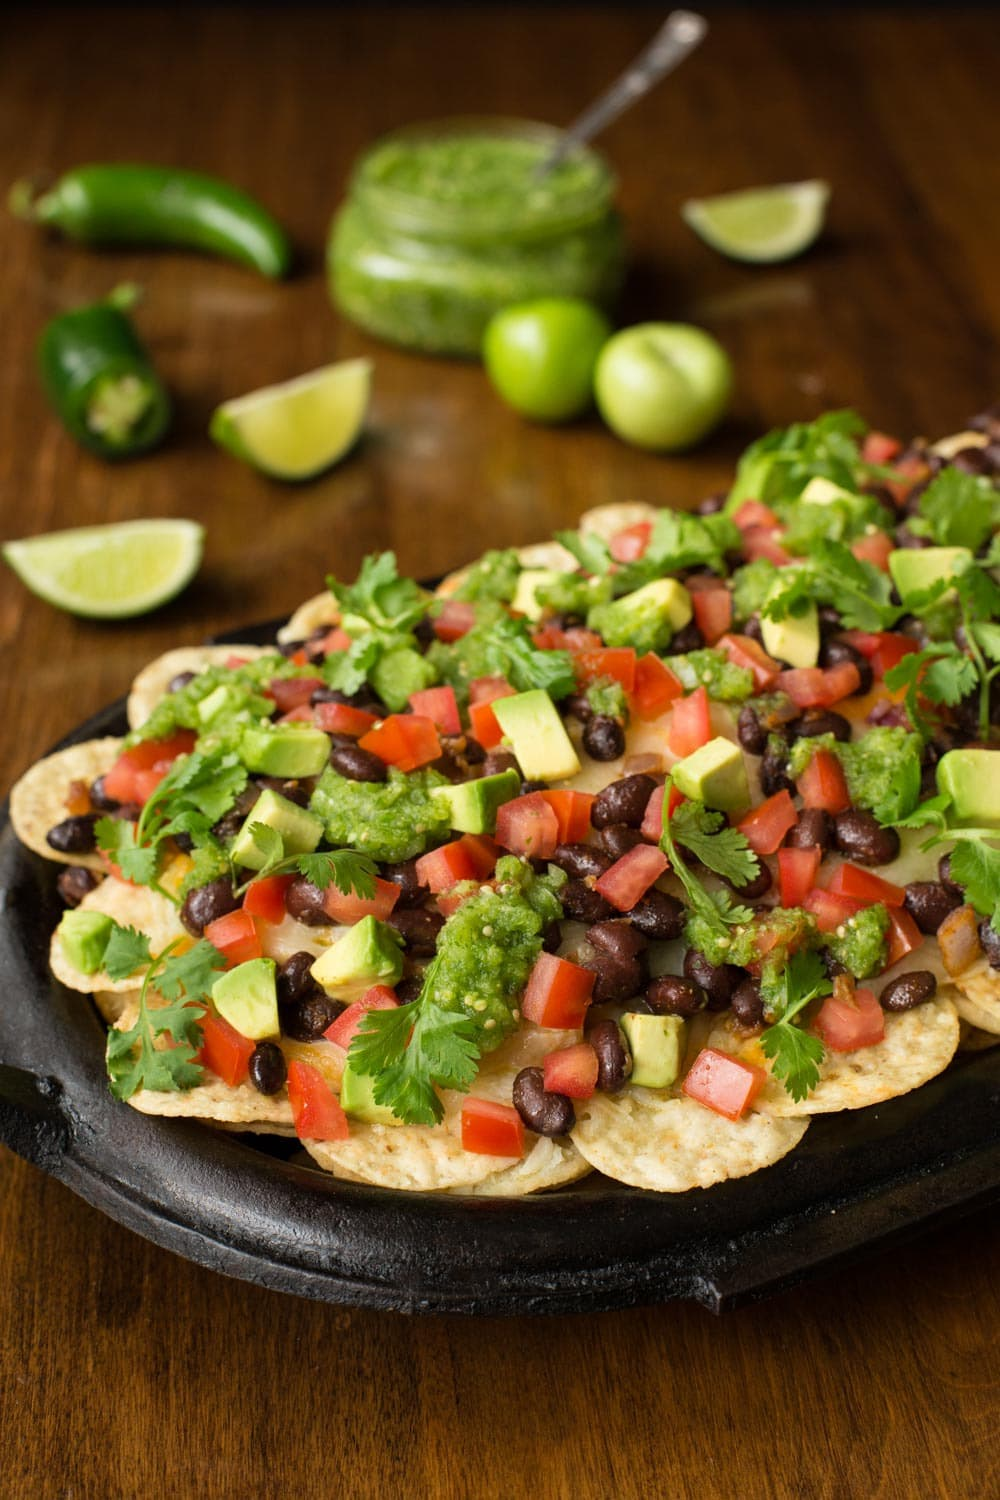 Photo of a cast iron skillet with Black Bean Nachos with Salsa Verde with limes, tomatillos and peppers on the table in the background.